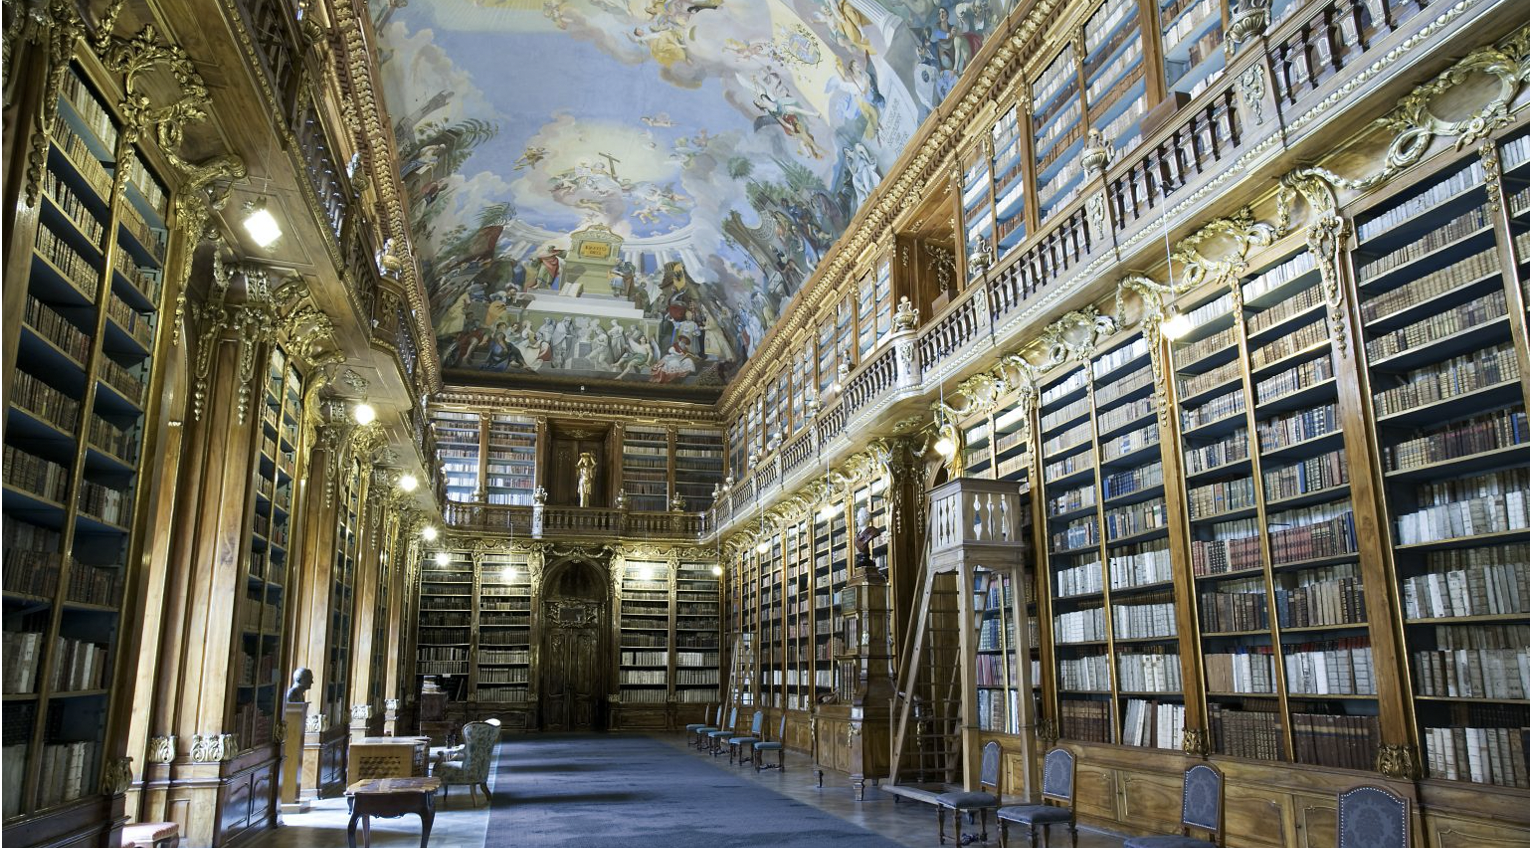 An Enlightenment-era reading room lined with bookshelves that reach to an intricately painted ceiling